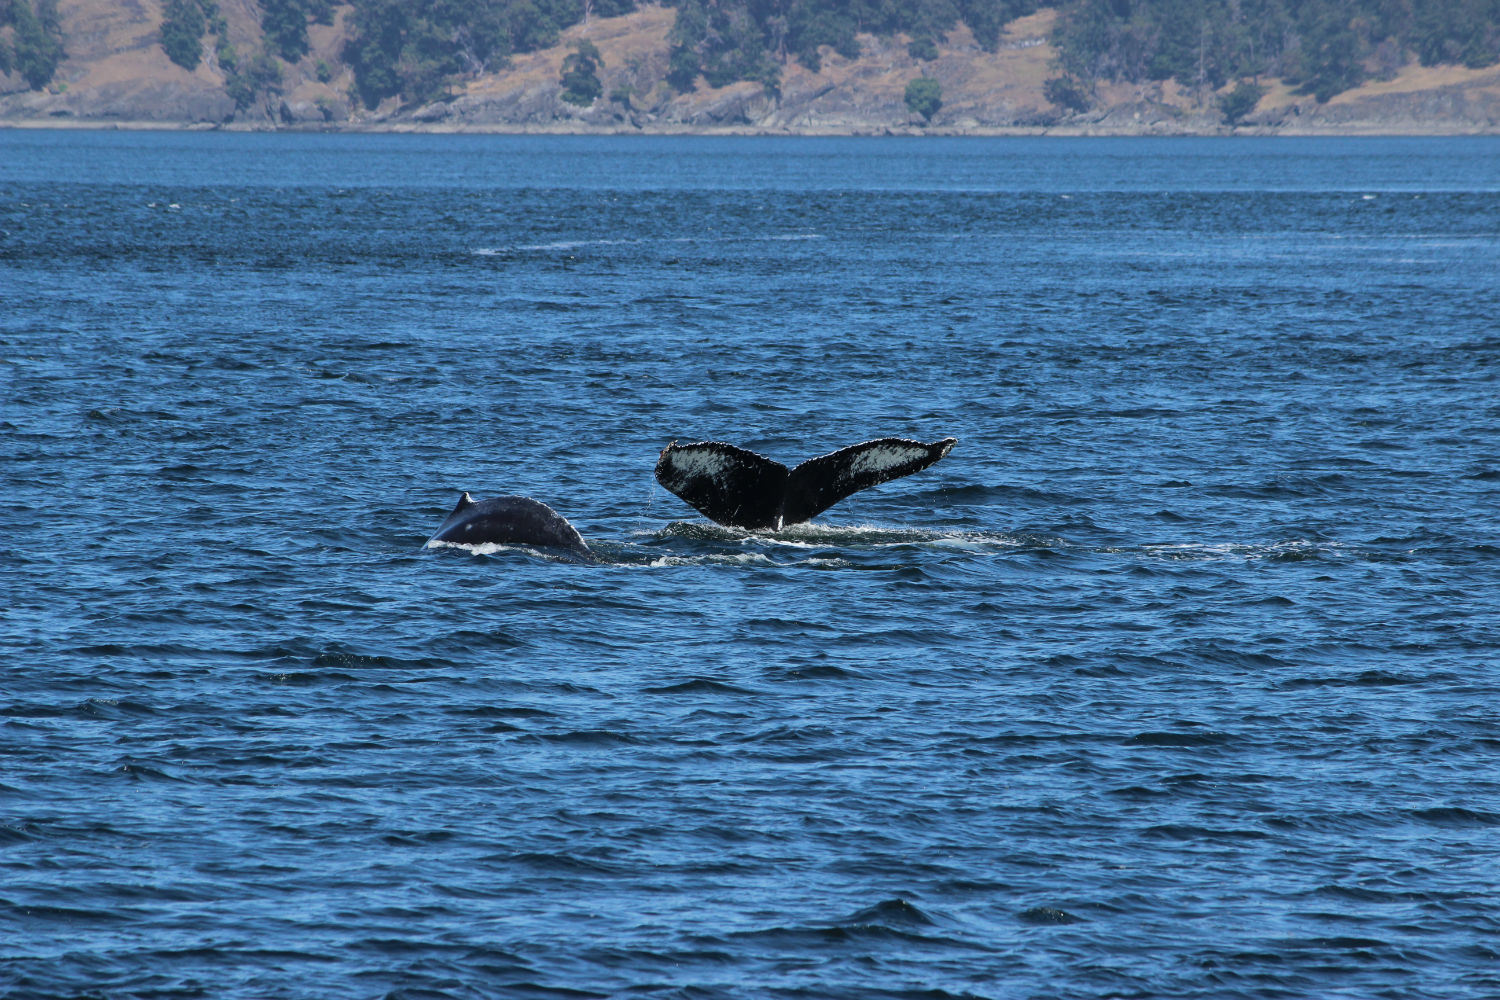 Whale Watching in the San Juan Islands : Northwest Trip Day 6